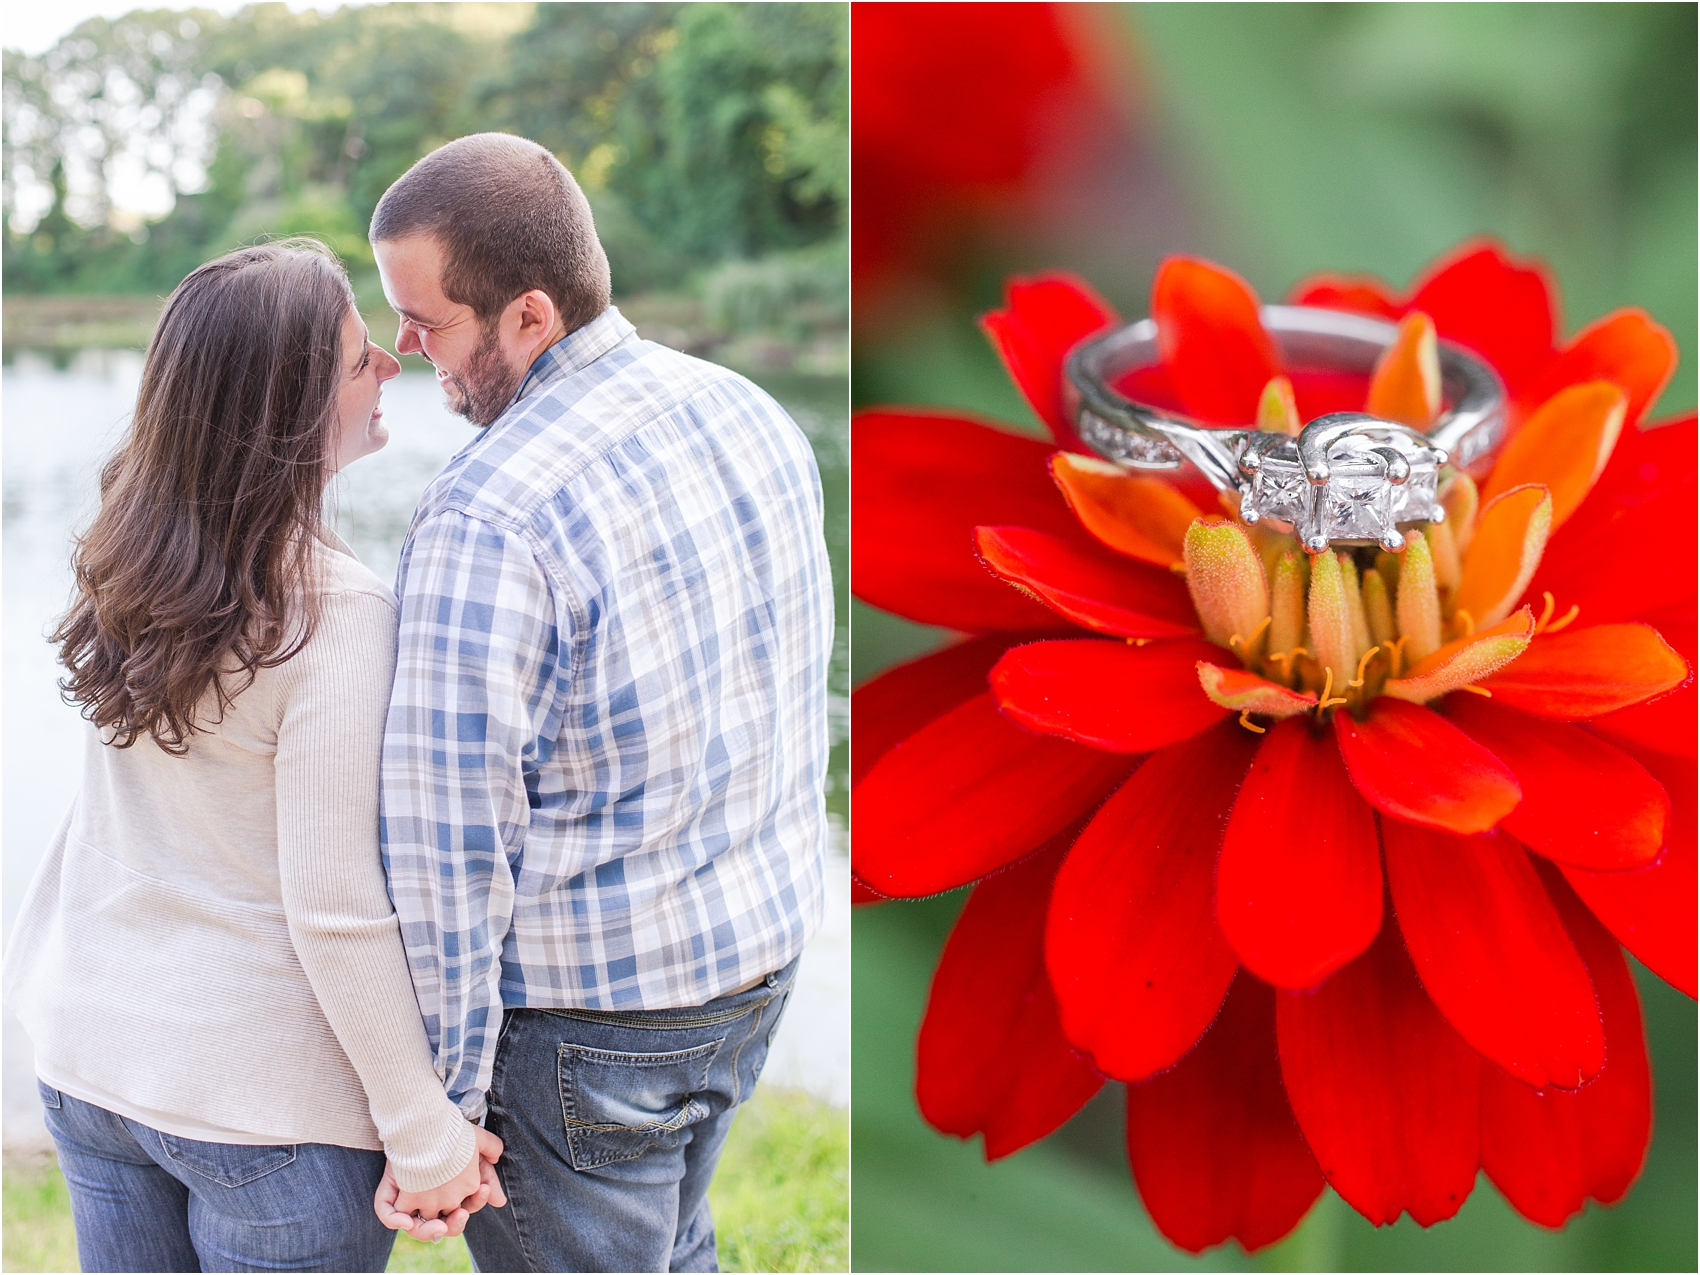 candid-romantic-summer-engagement-photos-at-hidden-lake-gardens-and-black-fire-winery-in-tipton-mi-by-courtney-carolyn-photography_0023.jpg